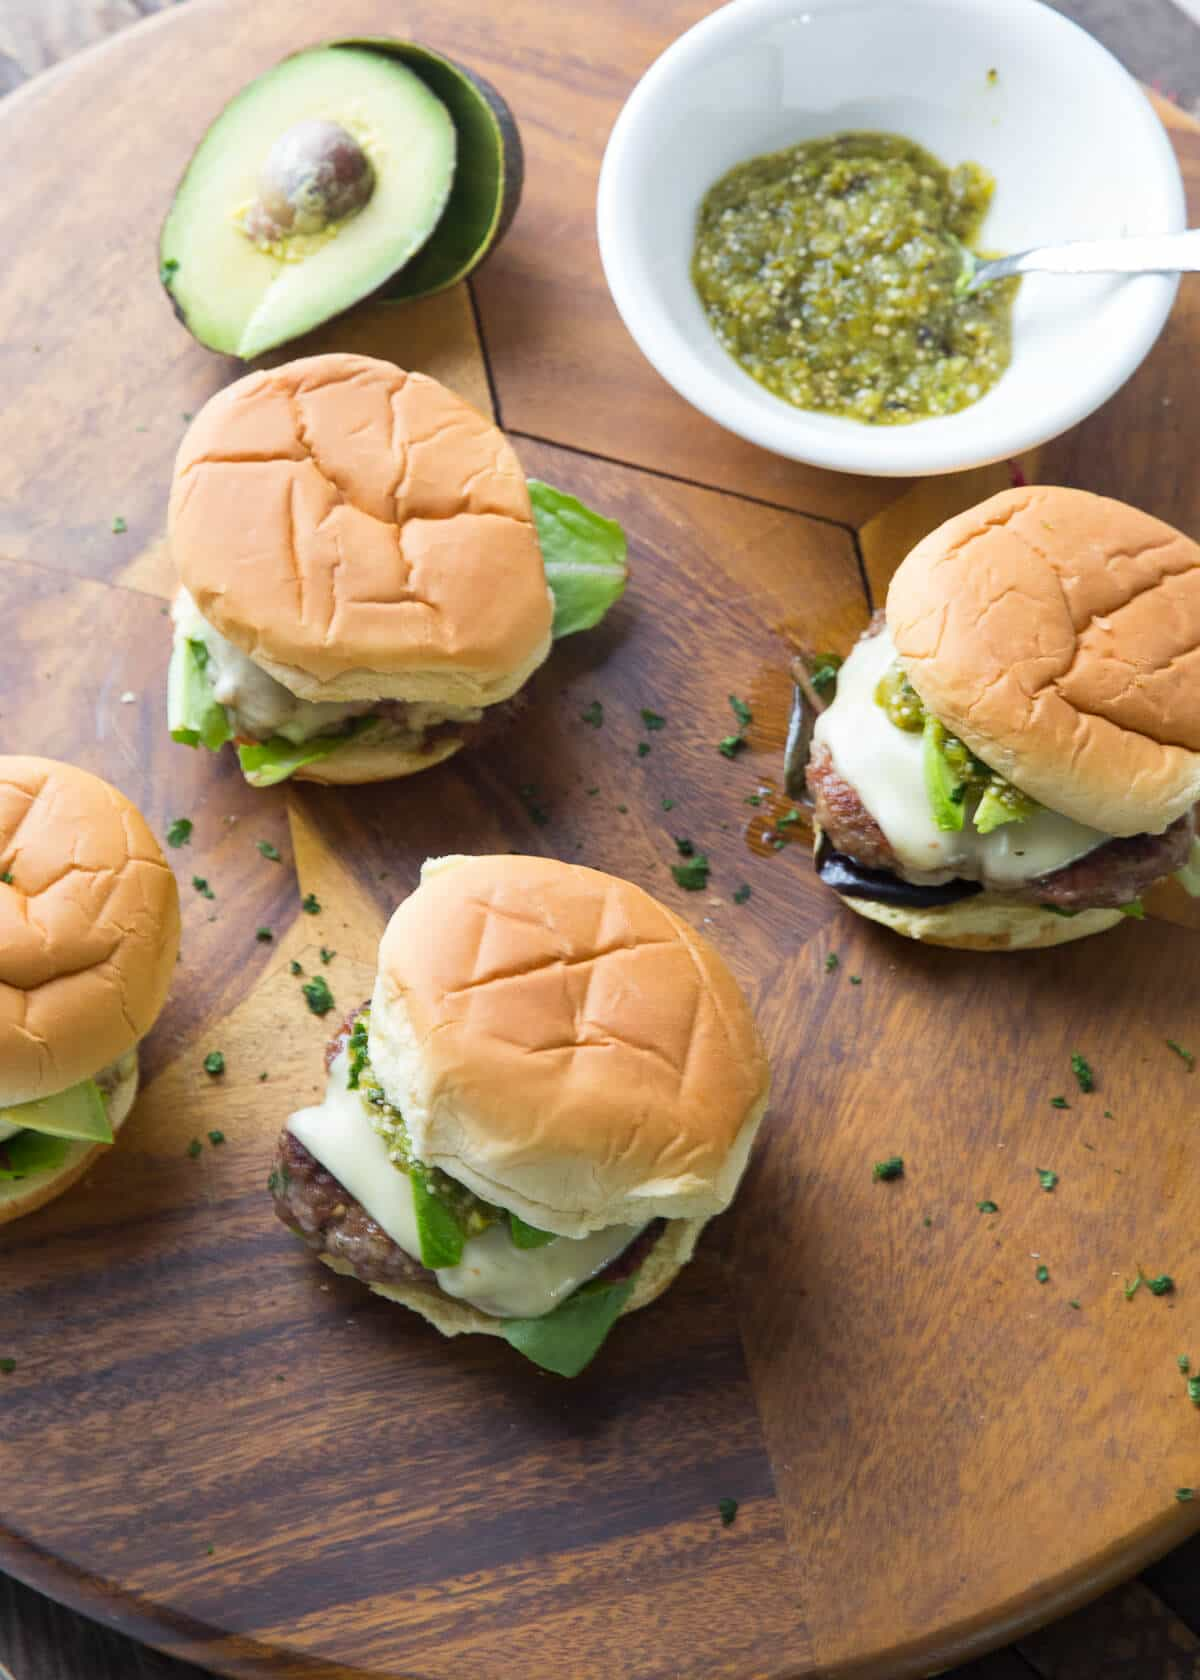 These pork burger and juicy and loaded with flavor from the inside out! You are going to love the simple chile verde sauce!